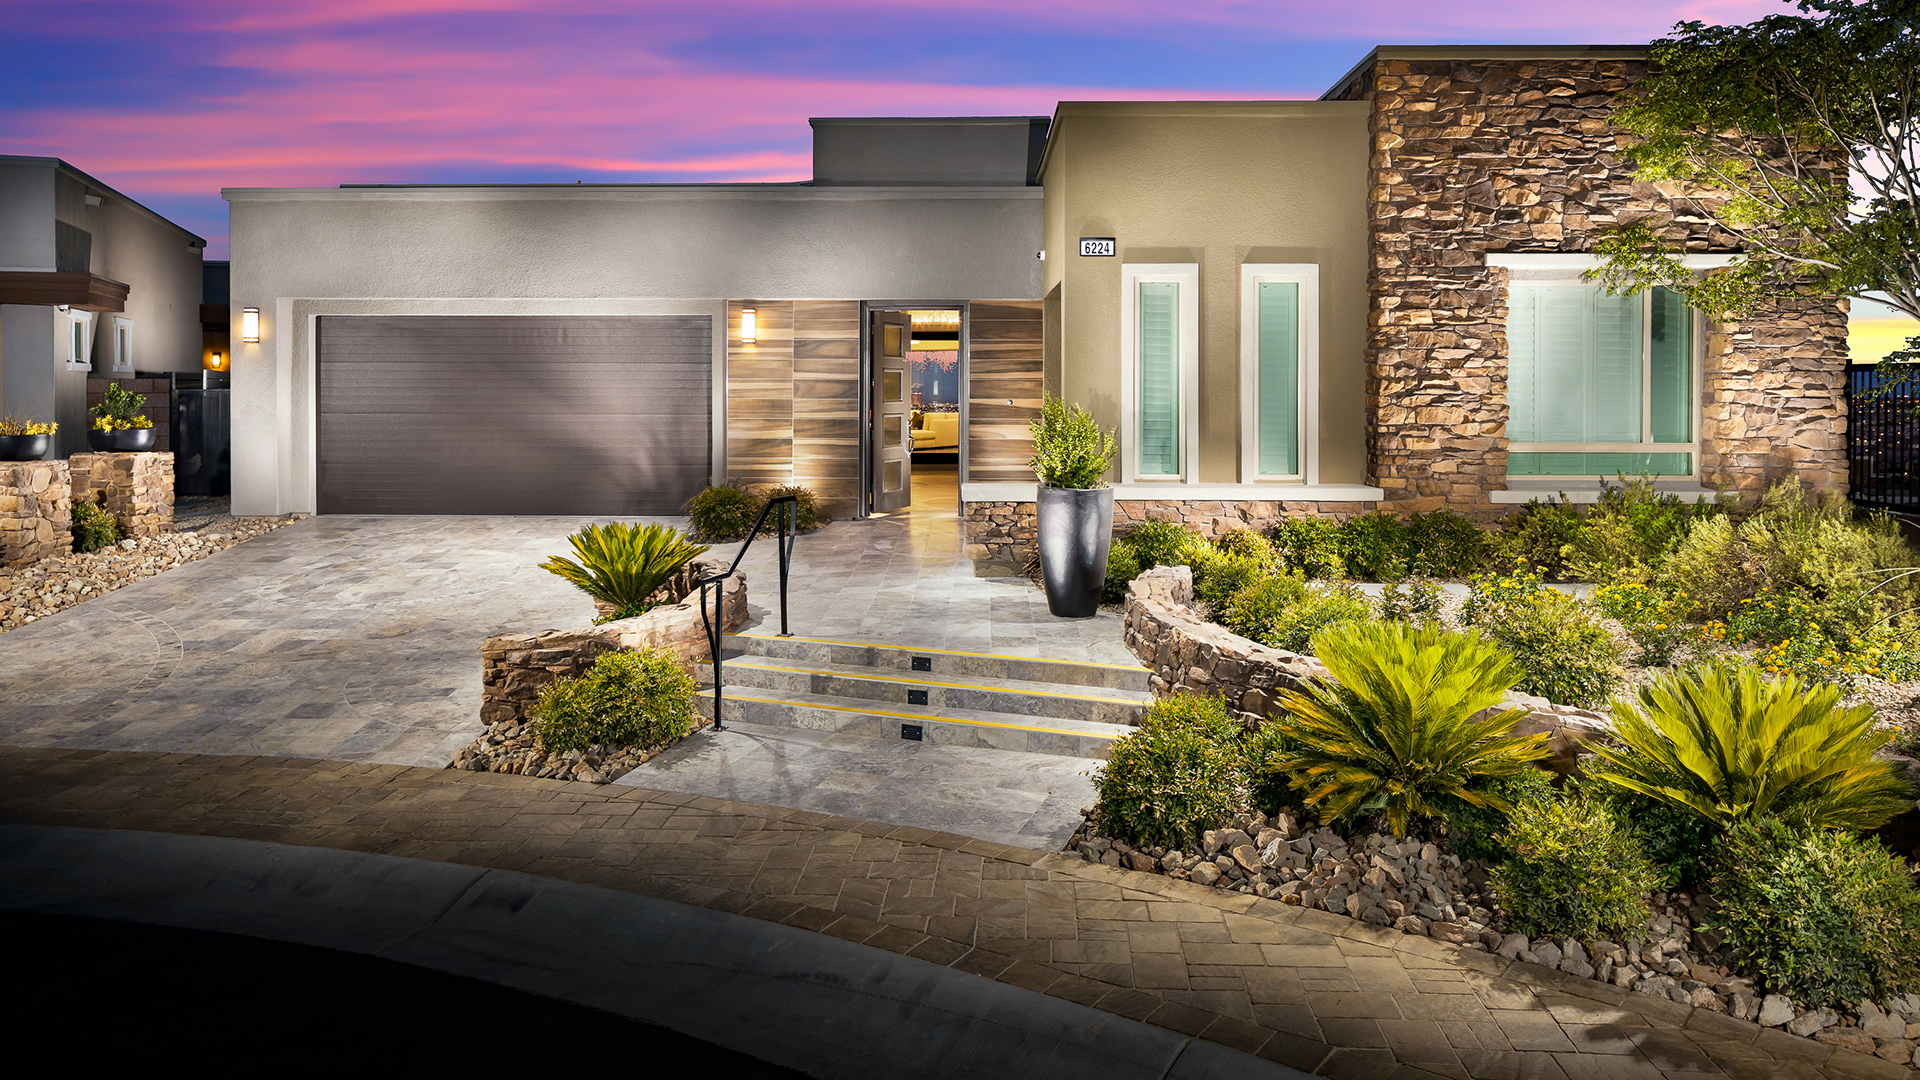 Las Vegas Nv New Homes For Sale